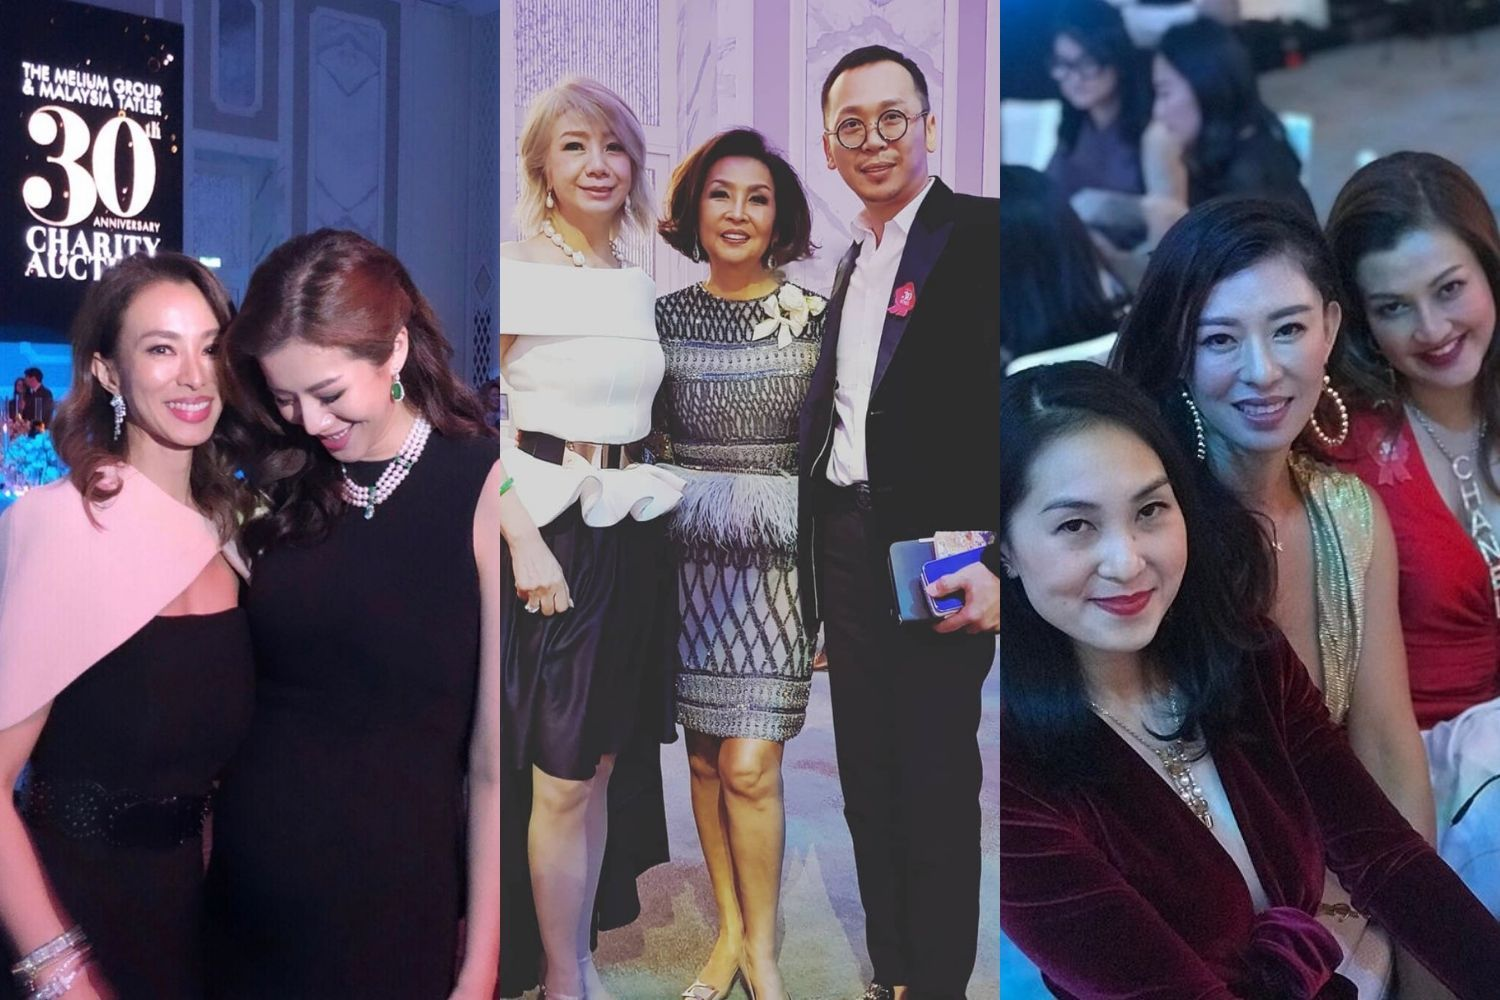 Tatlergrams Of The Week: The Melium Group & Malaysia Tatler's Unforgettable 30th Anniversary Charity Auction